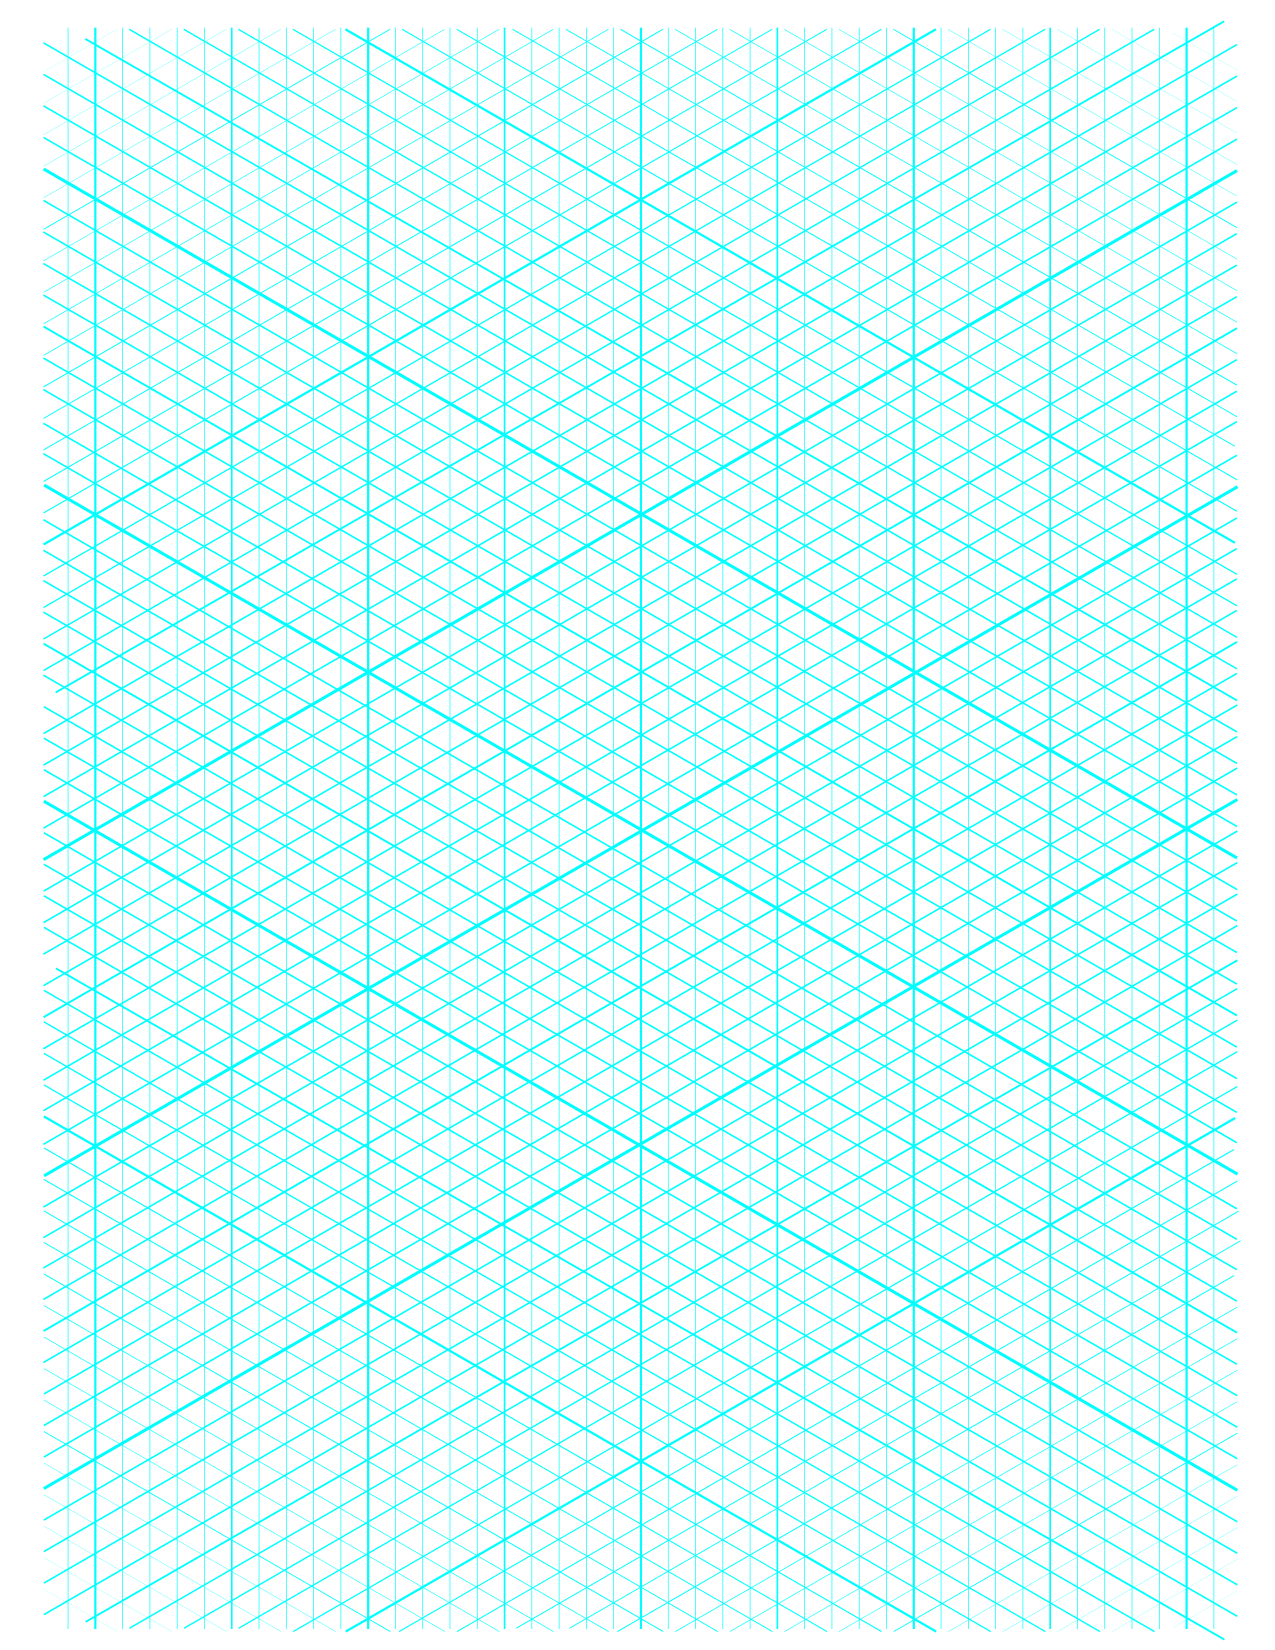 5 Free Isometric Graph Grid Paper Printable PDF